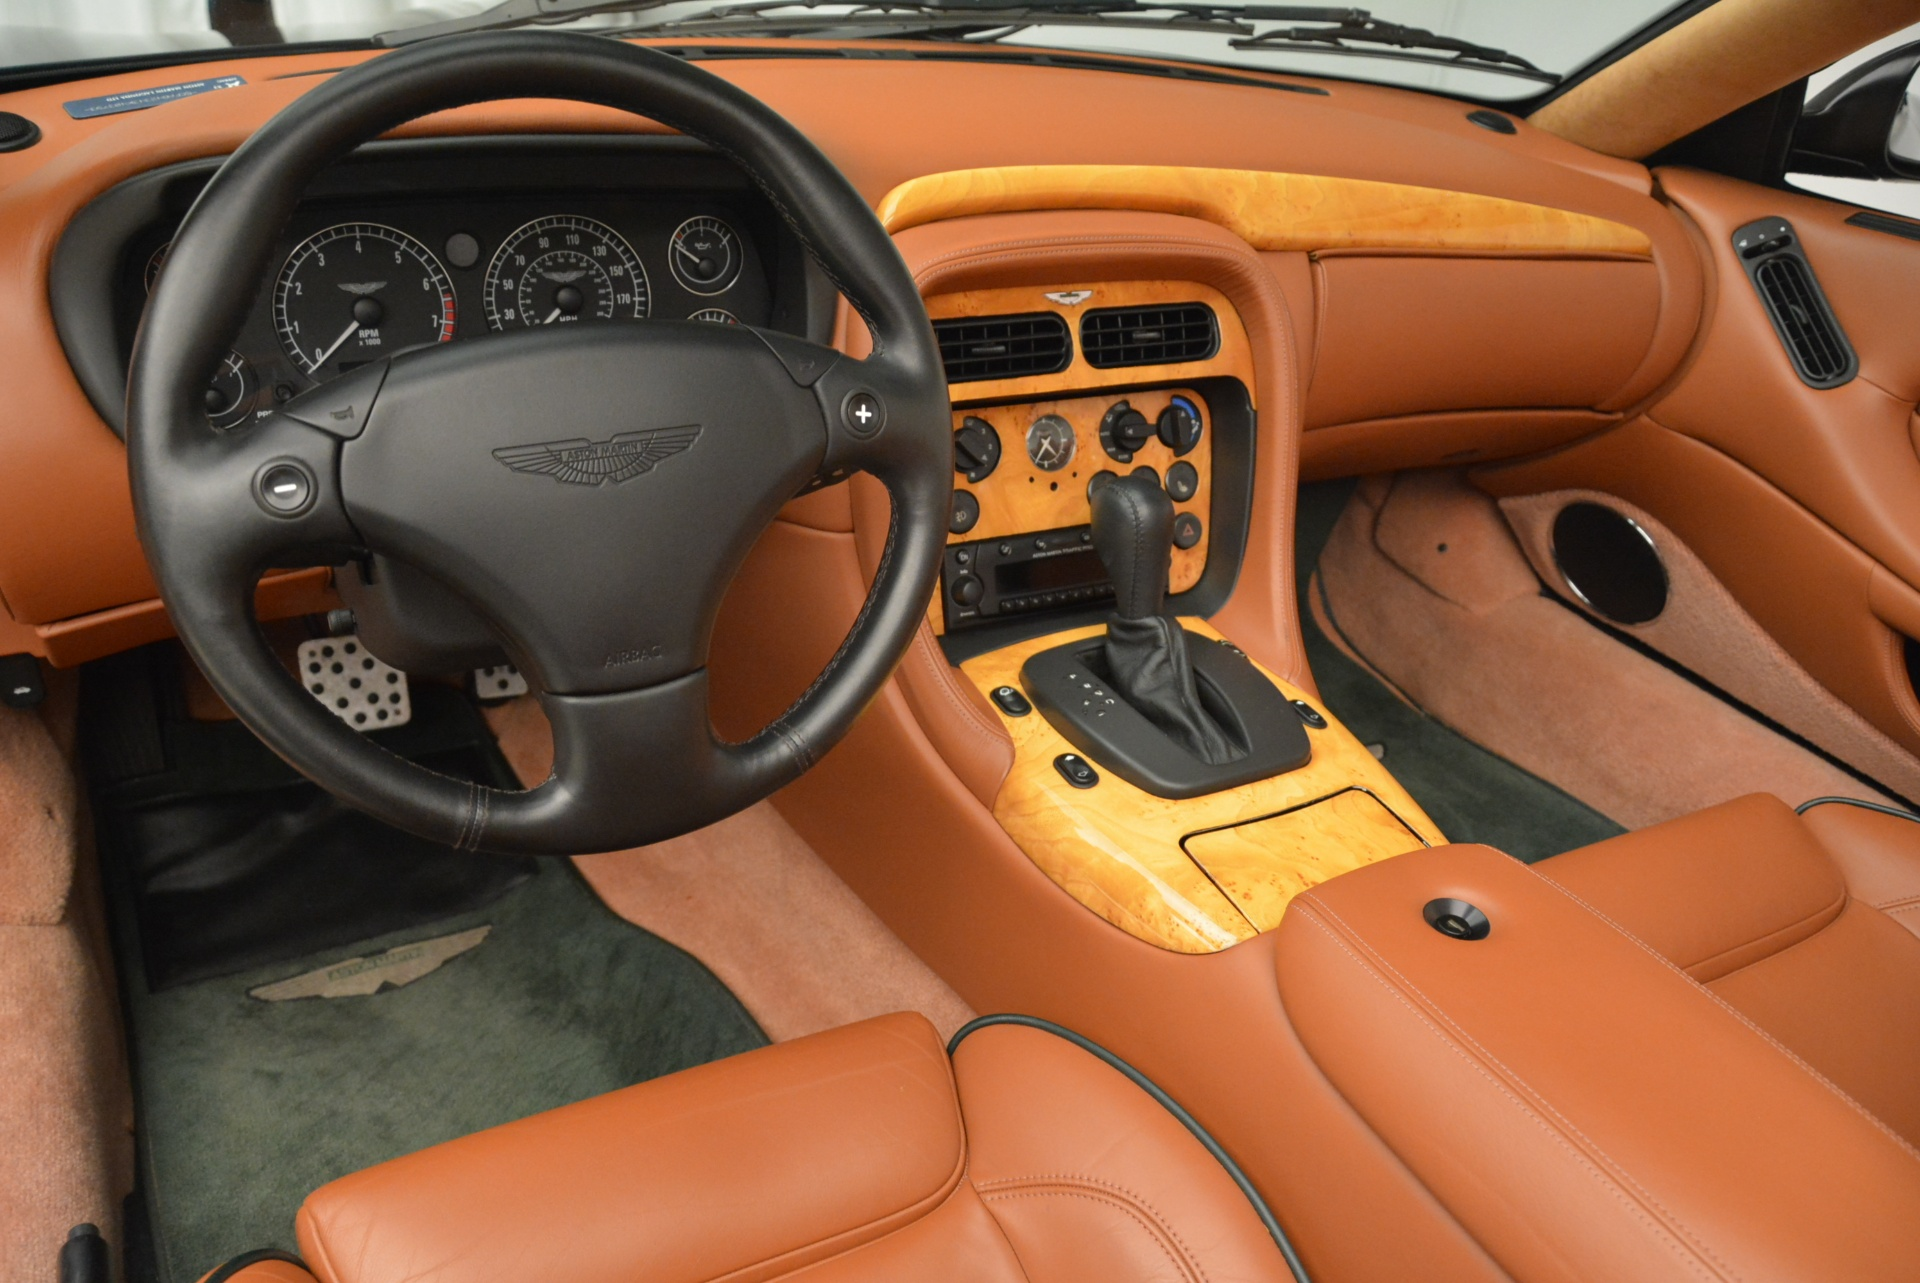 Used 2003 Aston Martin DB7 Vantage Volante For Sale In Westport, CT 2084_p24